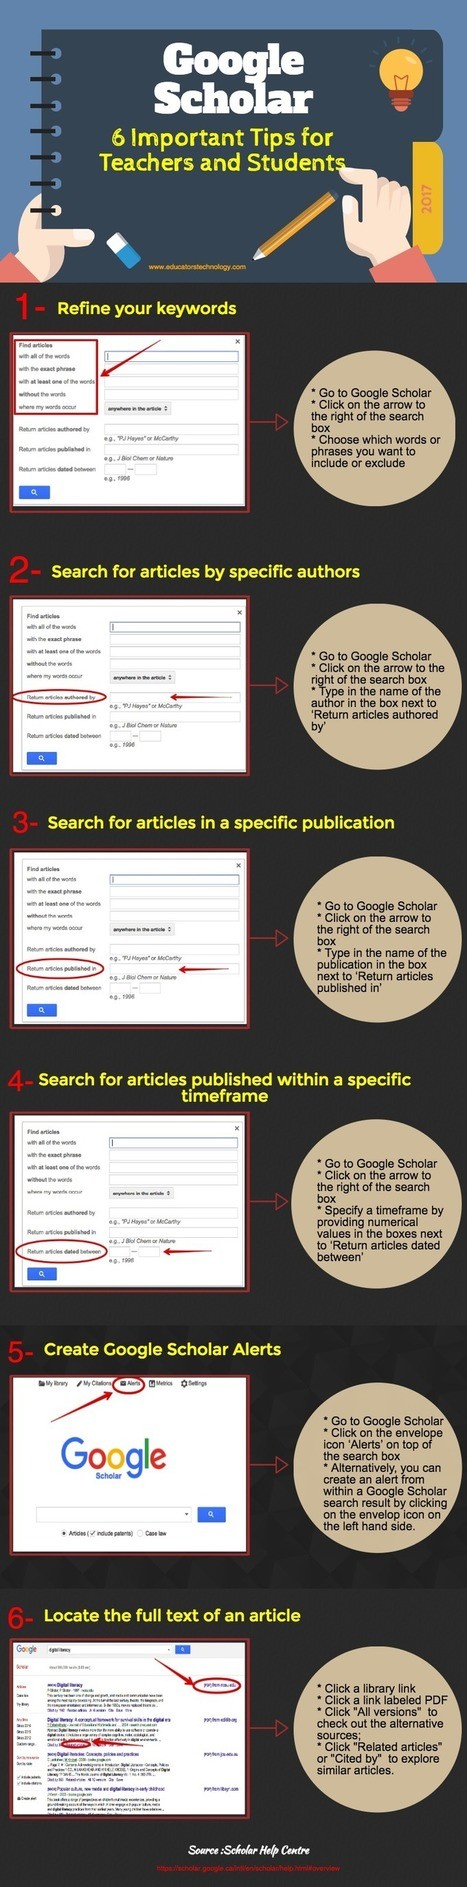 6 Basic Google Scholar Tips Every Teacher Should Know about | Pedalogica: educación y TIC | Scoop.it